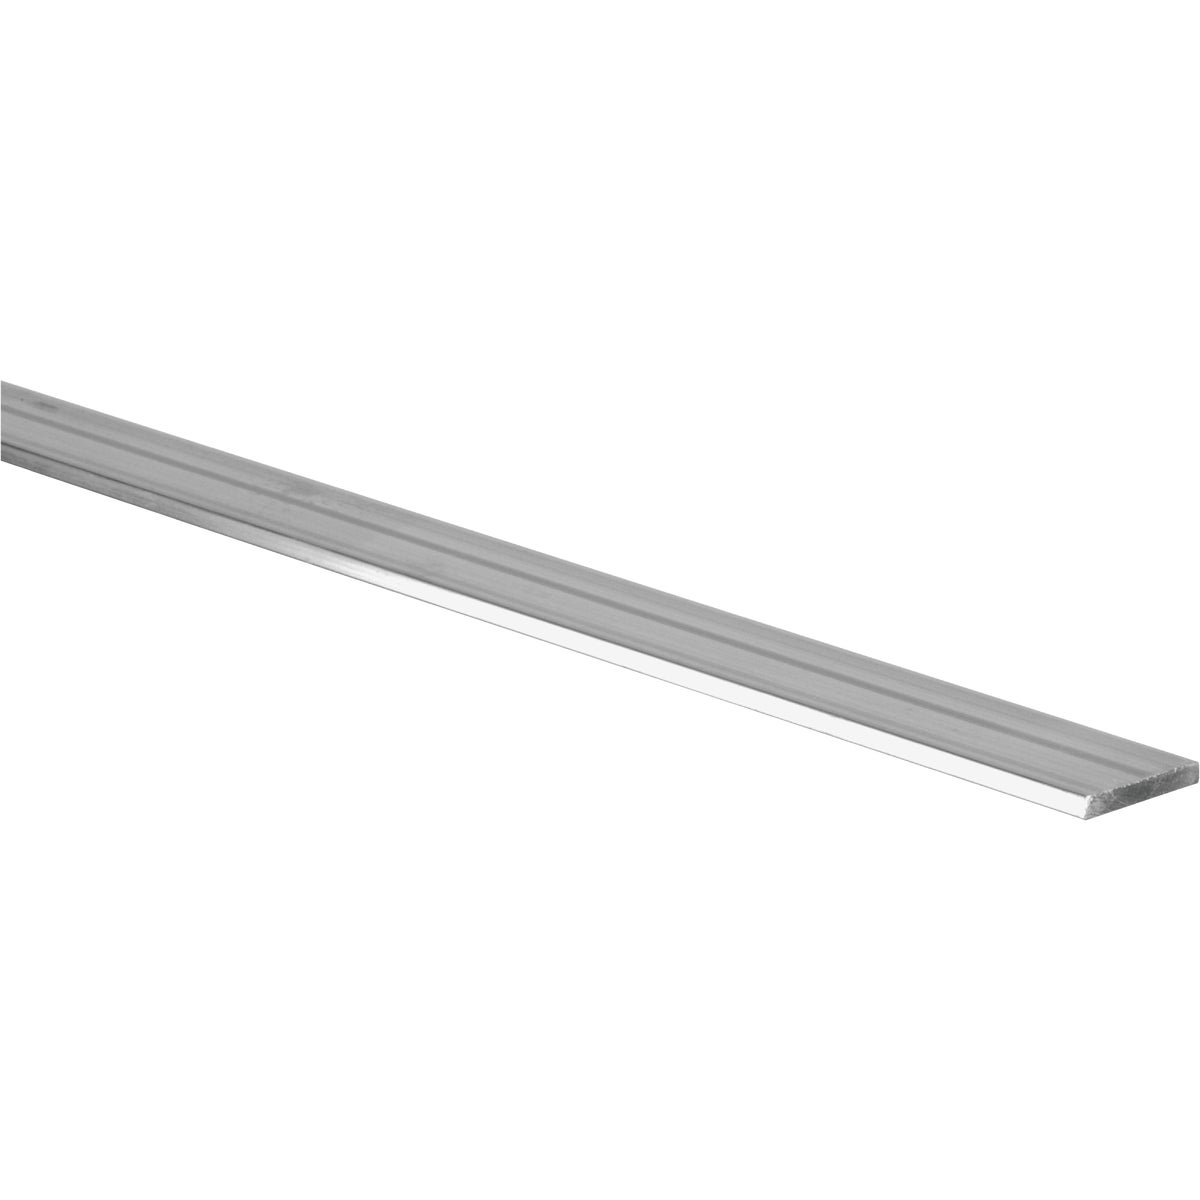 3/4X1/8X8' ALUMINUM BAR - N258186 by National Mfg Co